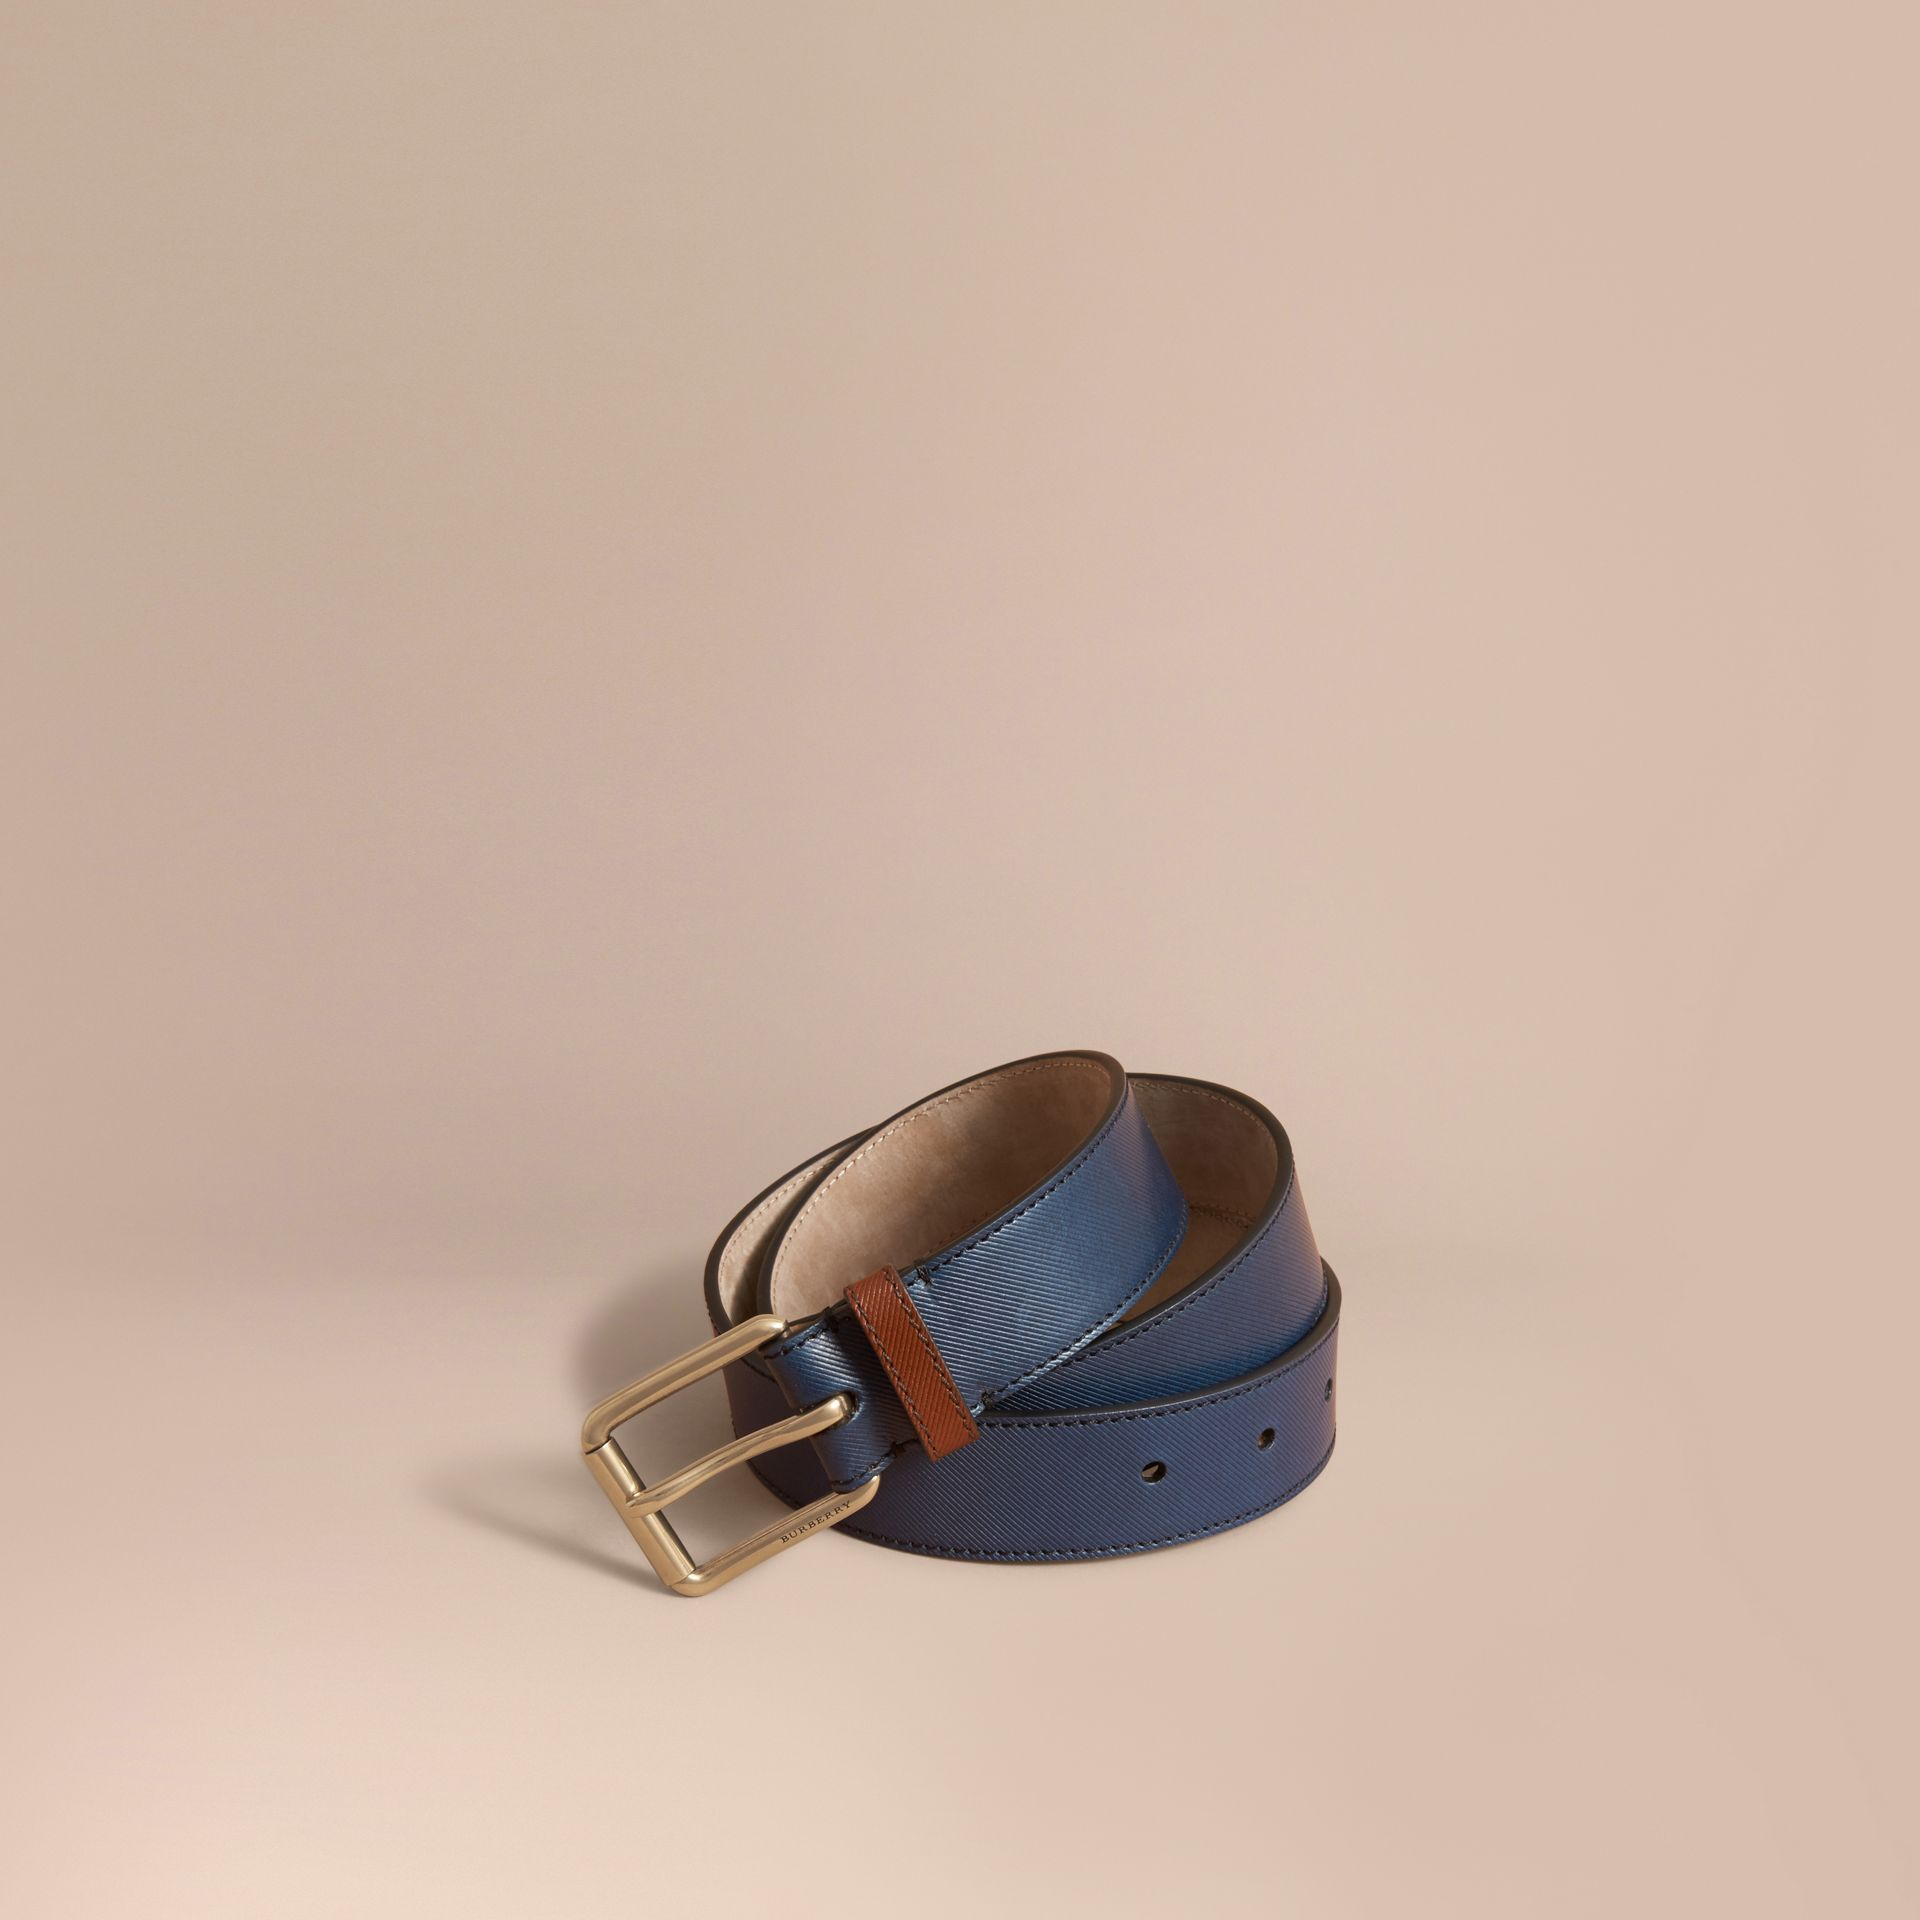 Two-tone Trench Leather Belt in Dark Navy - Men | Burberry - gallery image 1